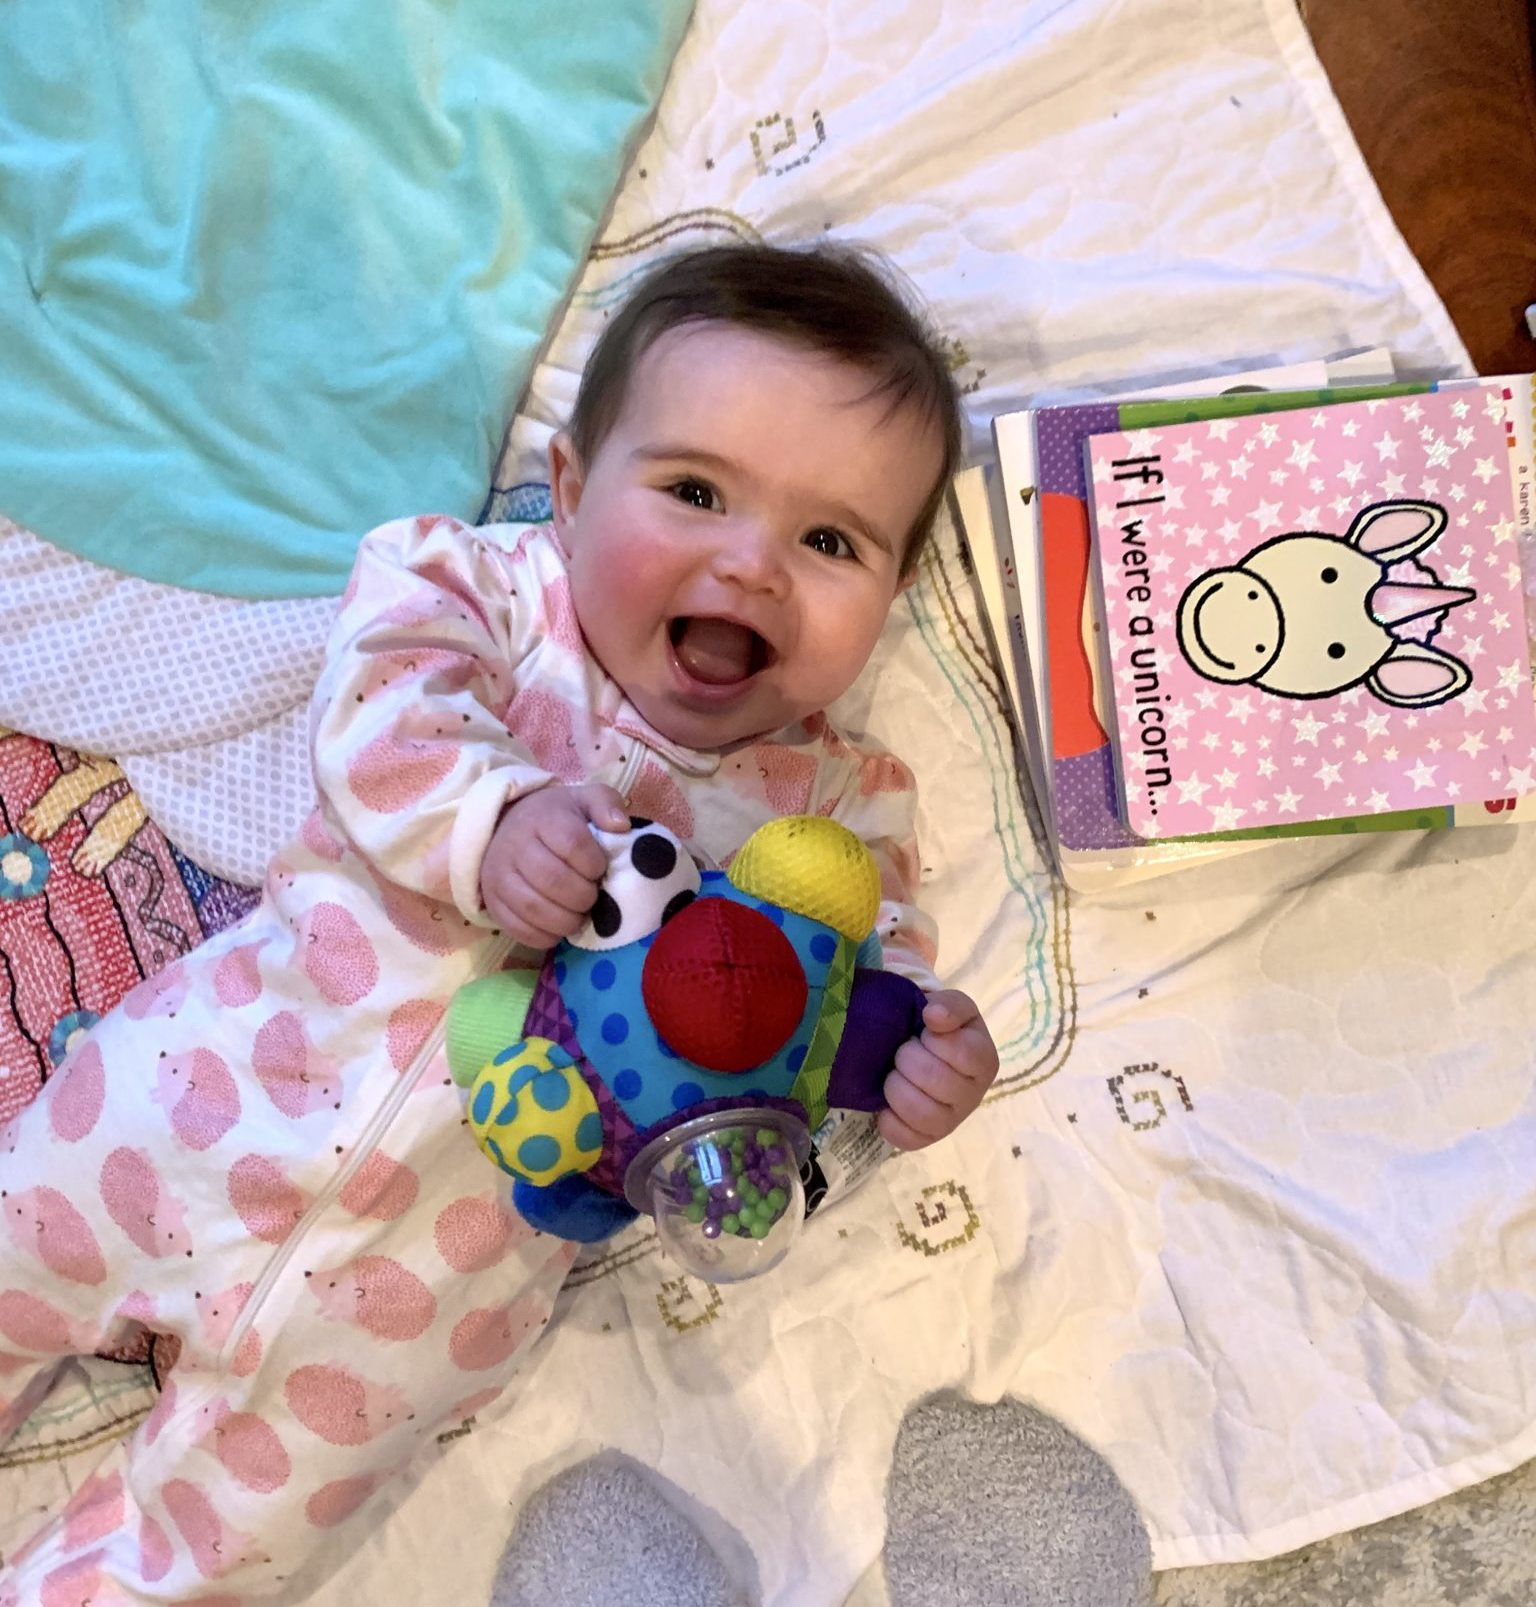 6 Month Old Baby Must Haves by popular Chicago lifestyle blog, Glass of Glam: image of a baby laying on a blanket on the floor and holding a sensory toy.